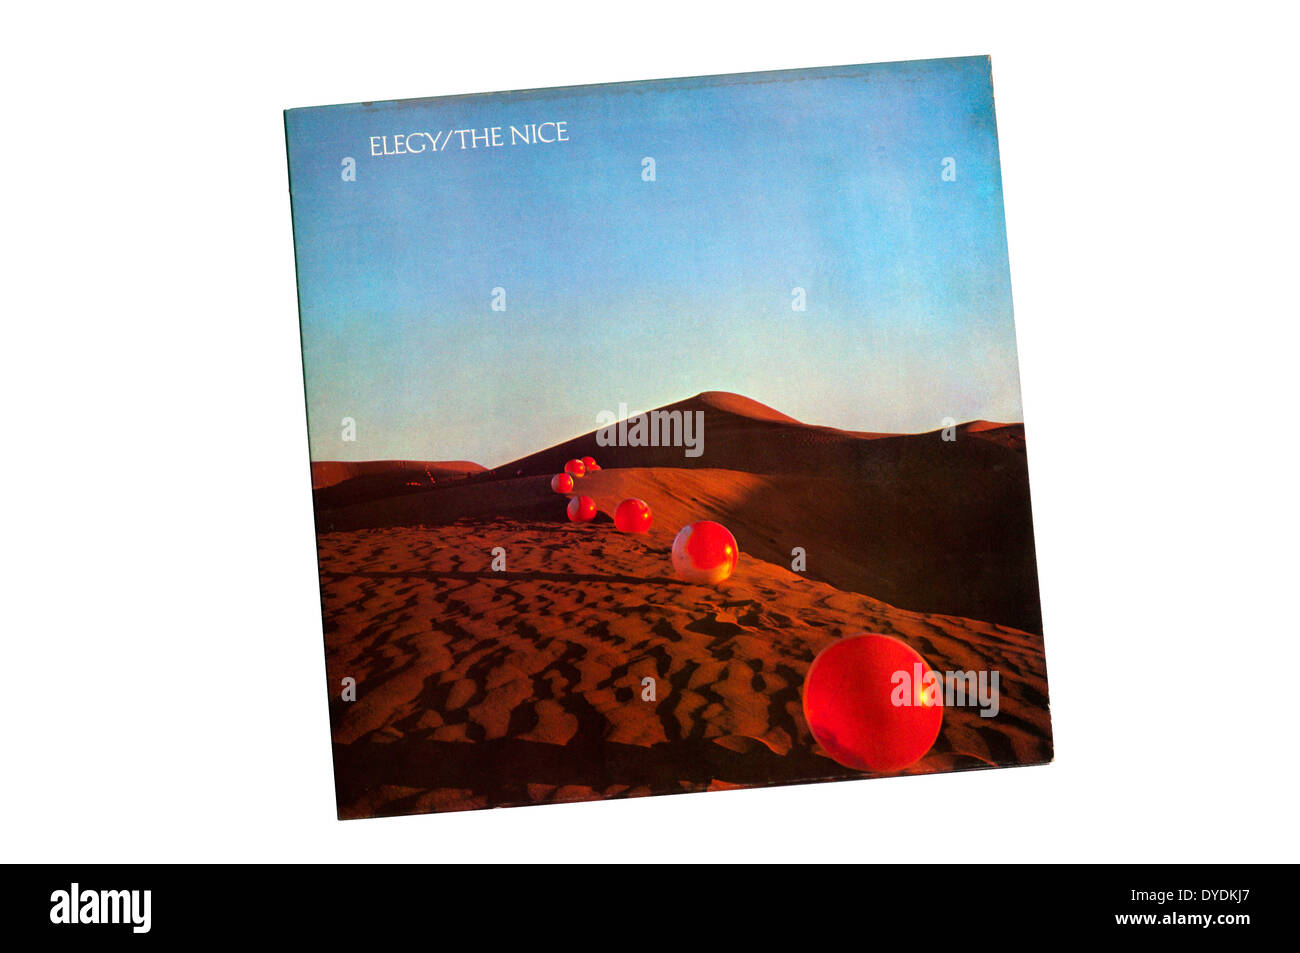 Elegy was the final album released by The Nice, in 1971. - Stock Image